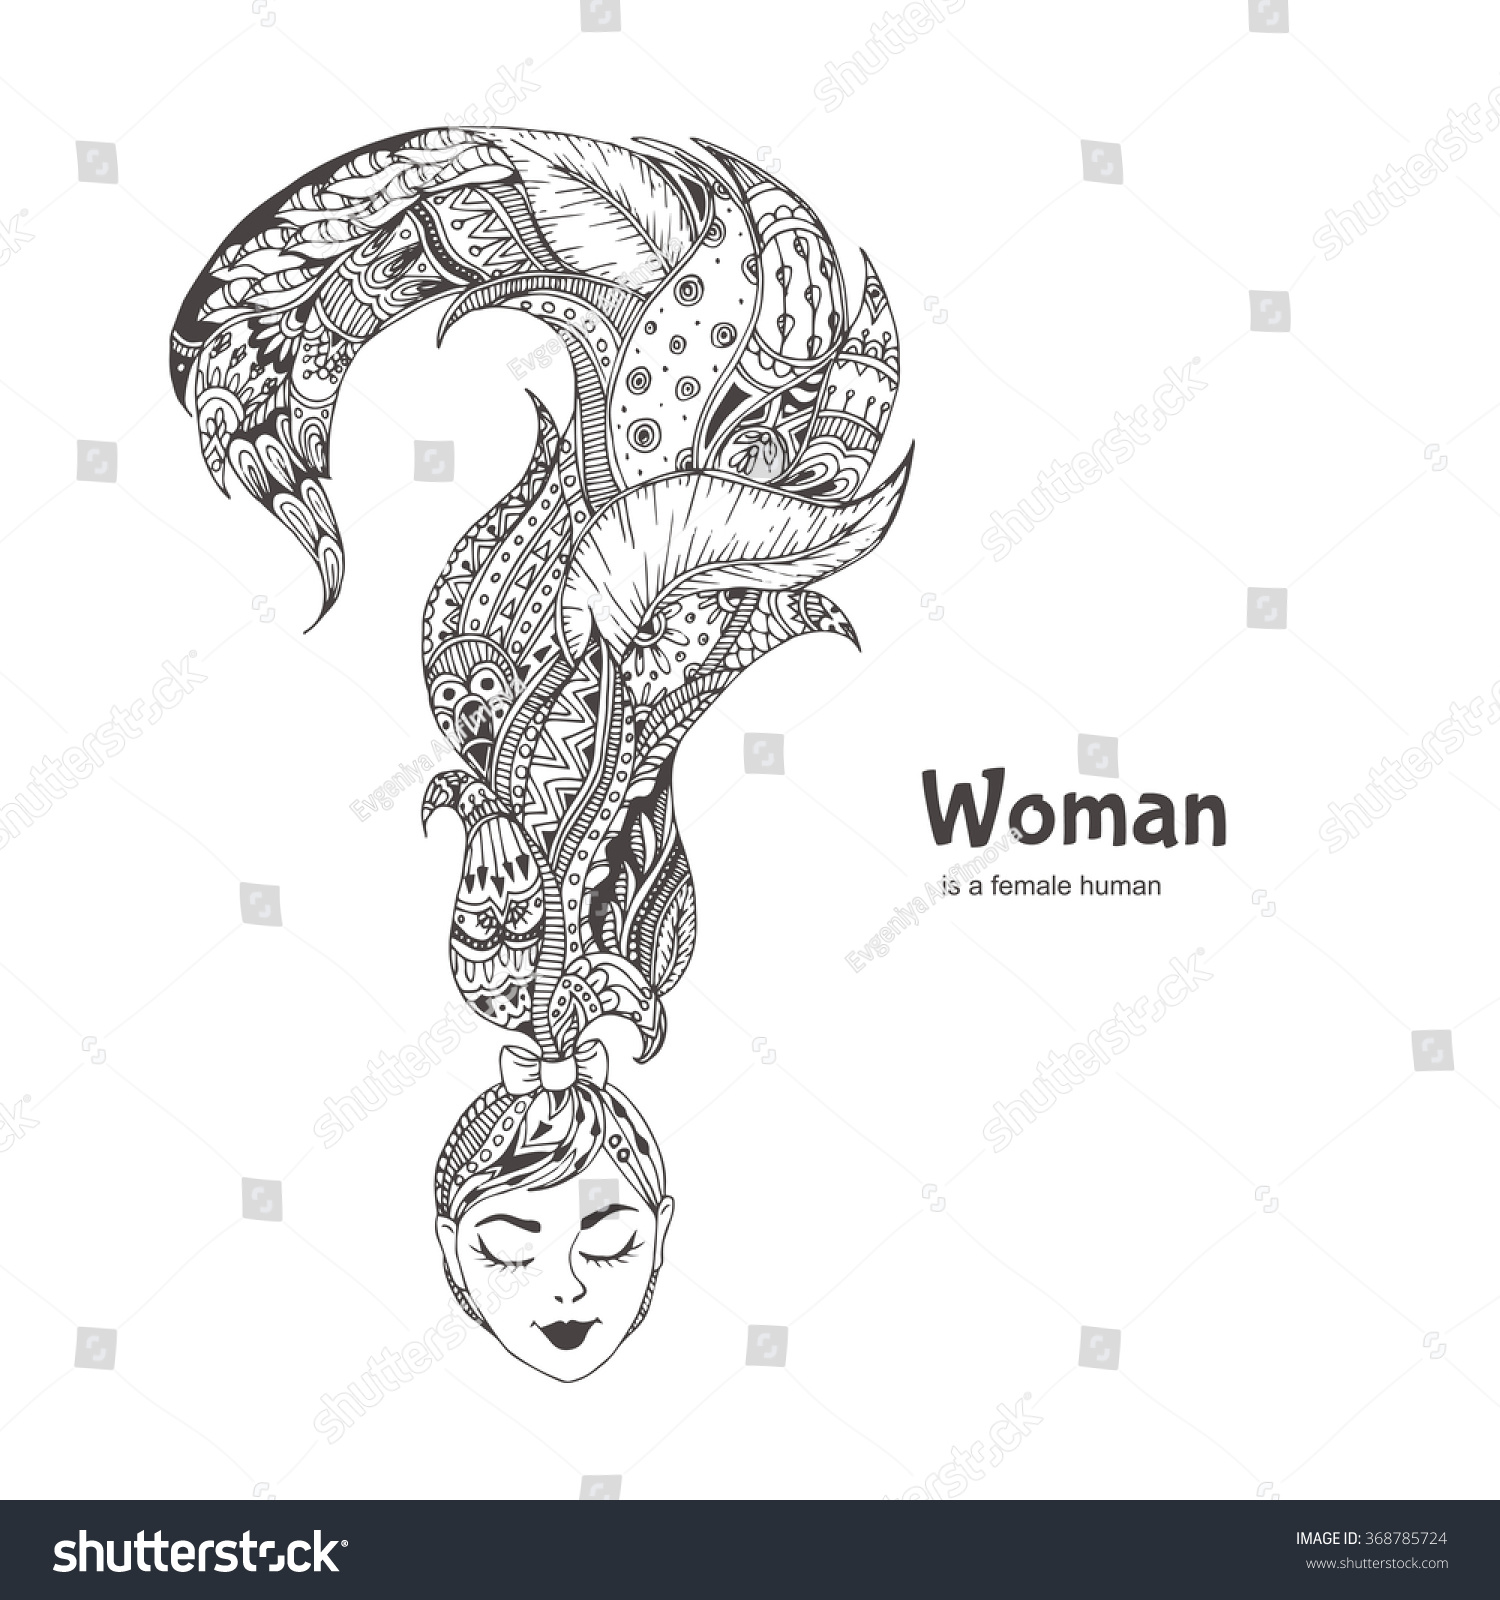 Coloring pages question mark - Hand Drawn Woman S Head And A Question Mark Hair With Ethnic Doodle